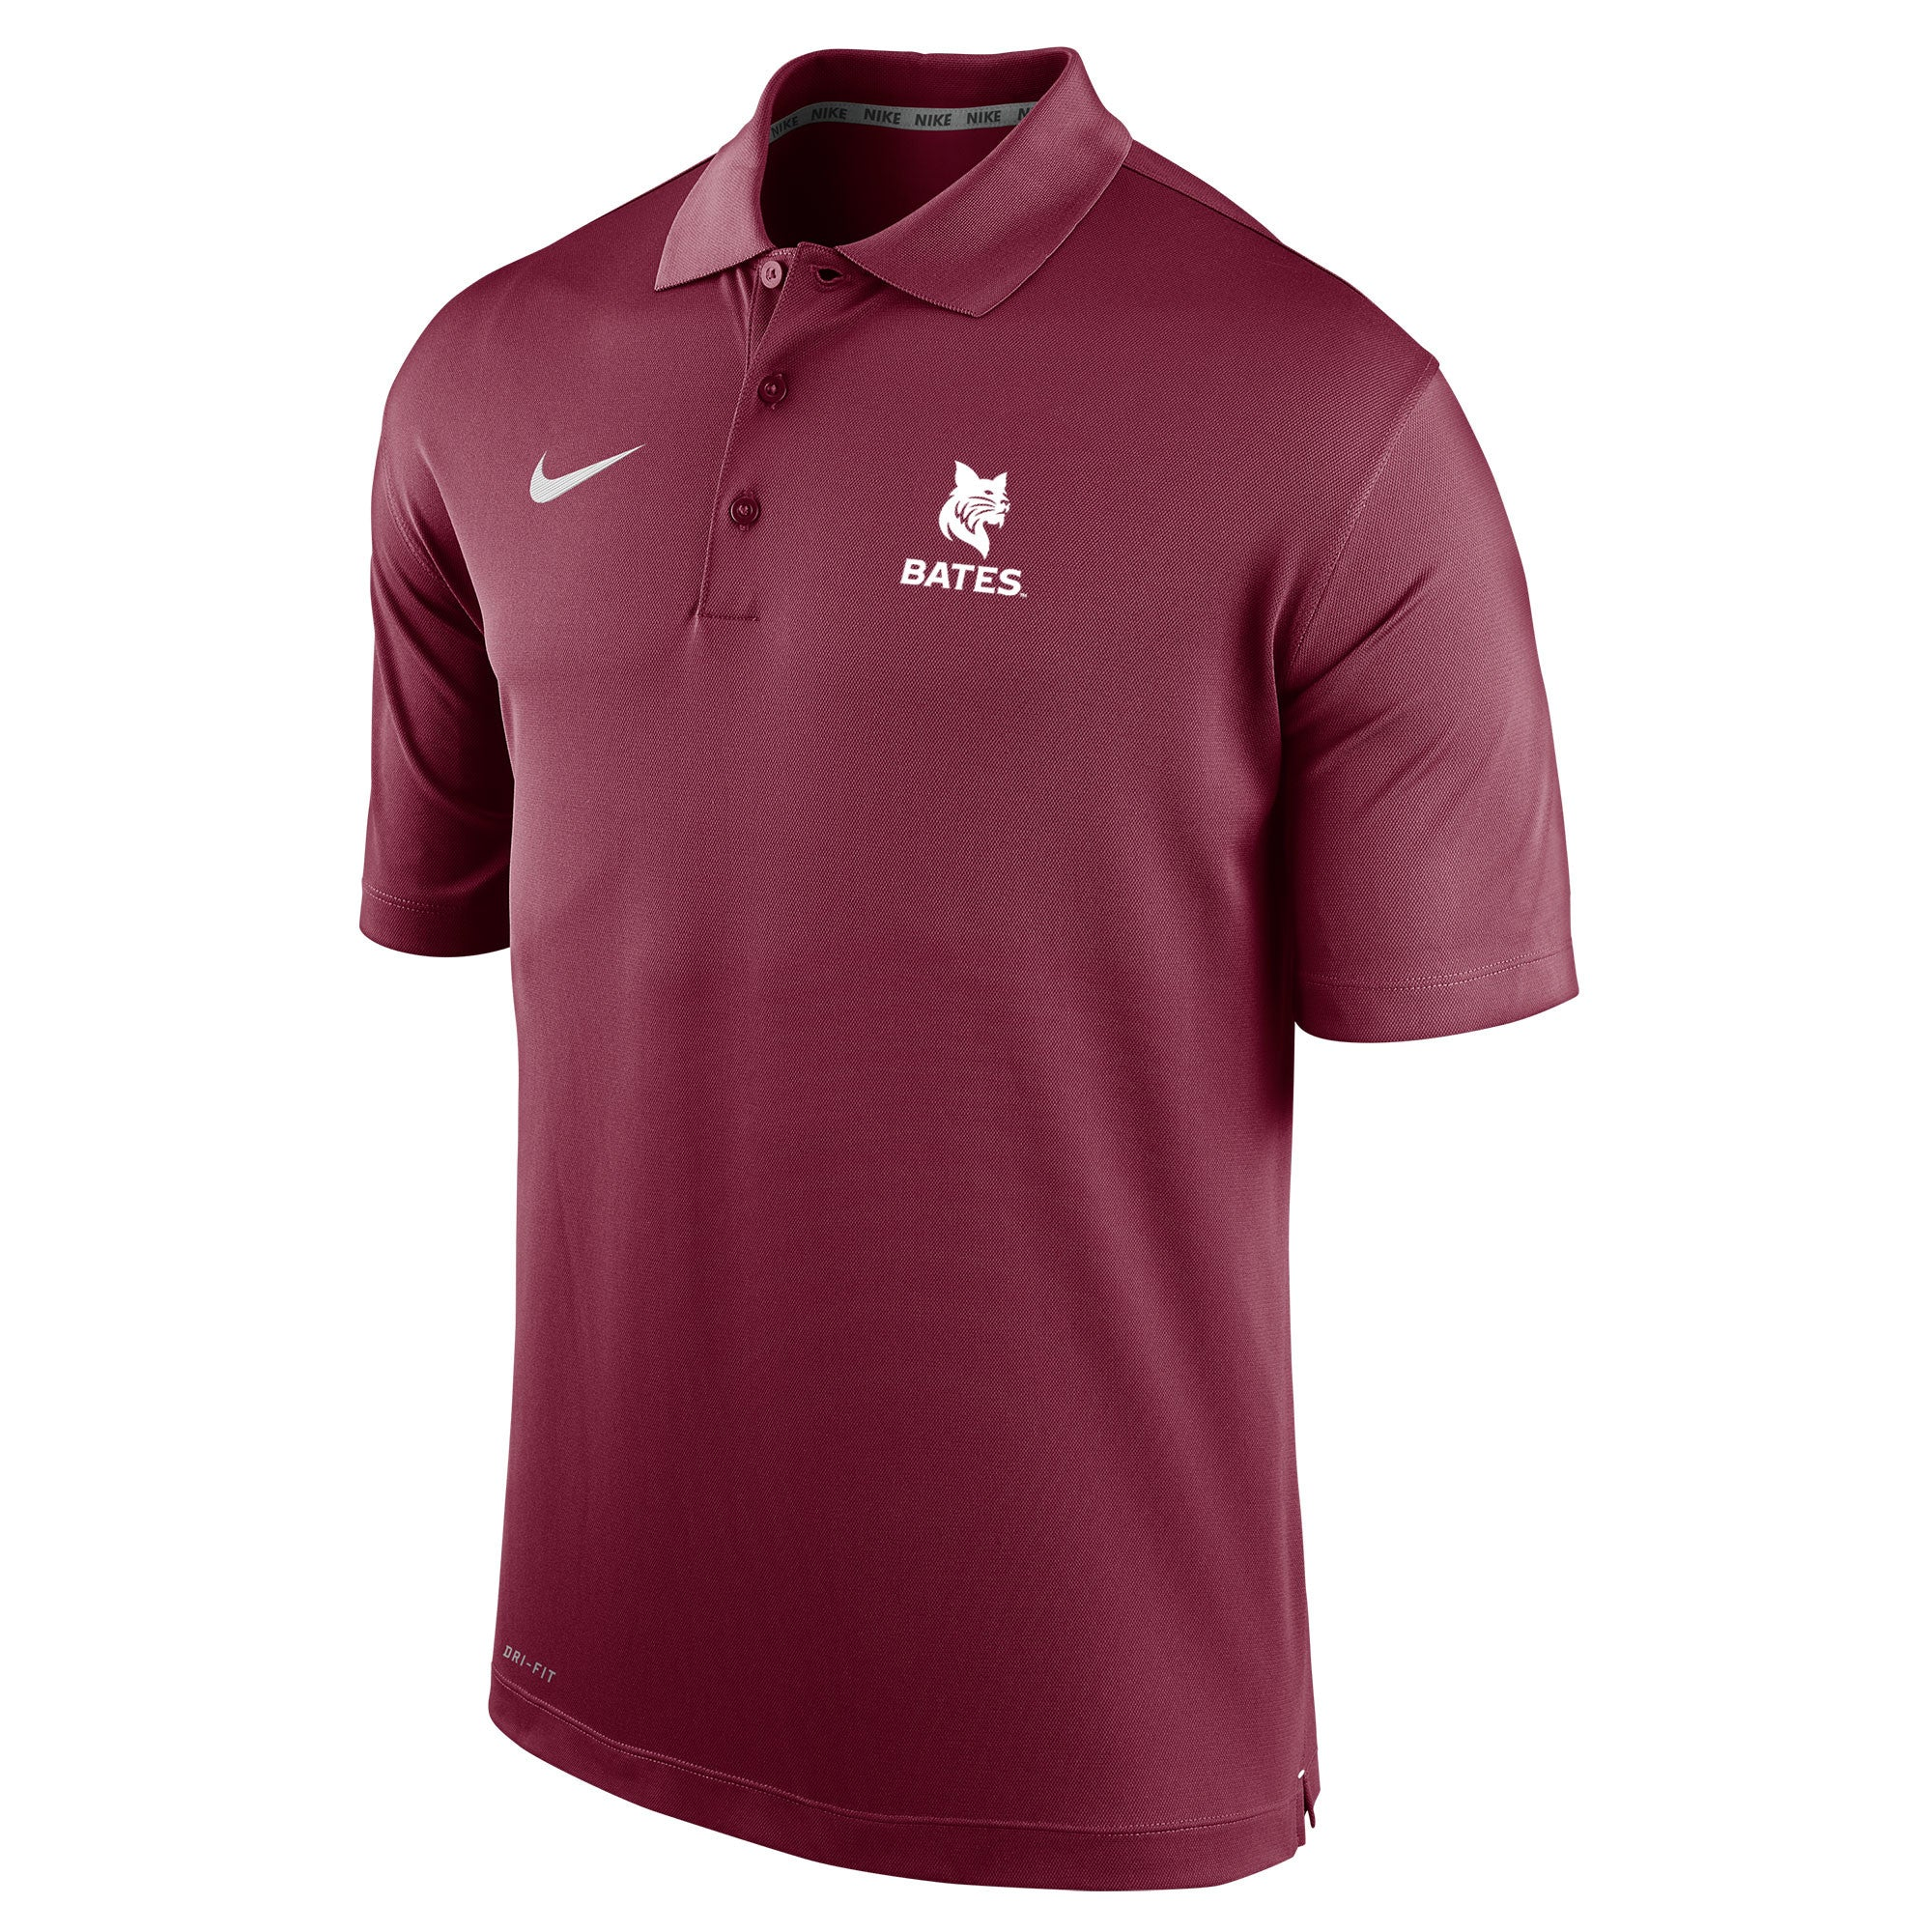 Men's Nike Performance Polo Shirt with Embroidery - Polo, Short Sleeve Shirt